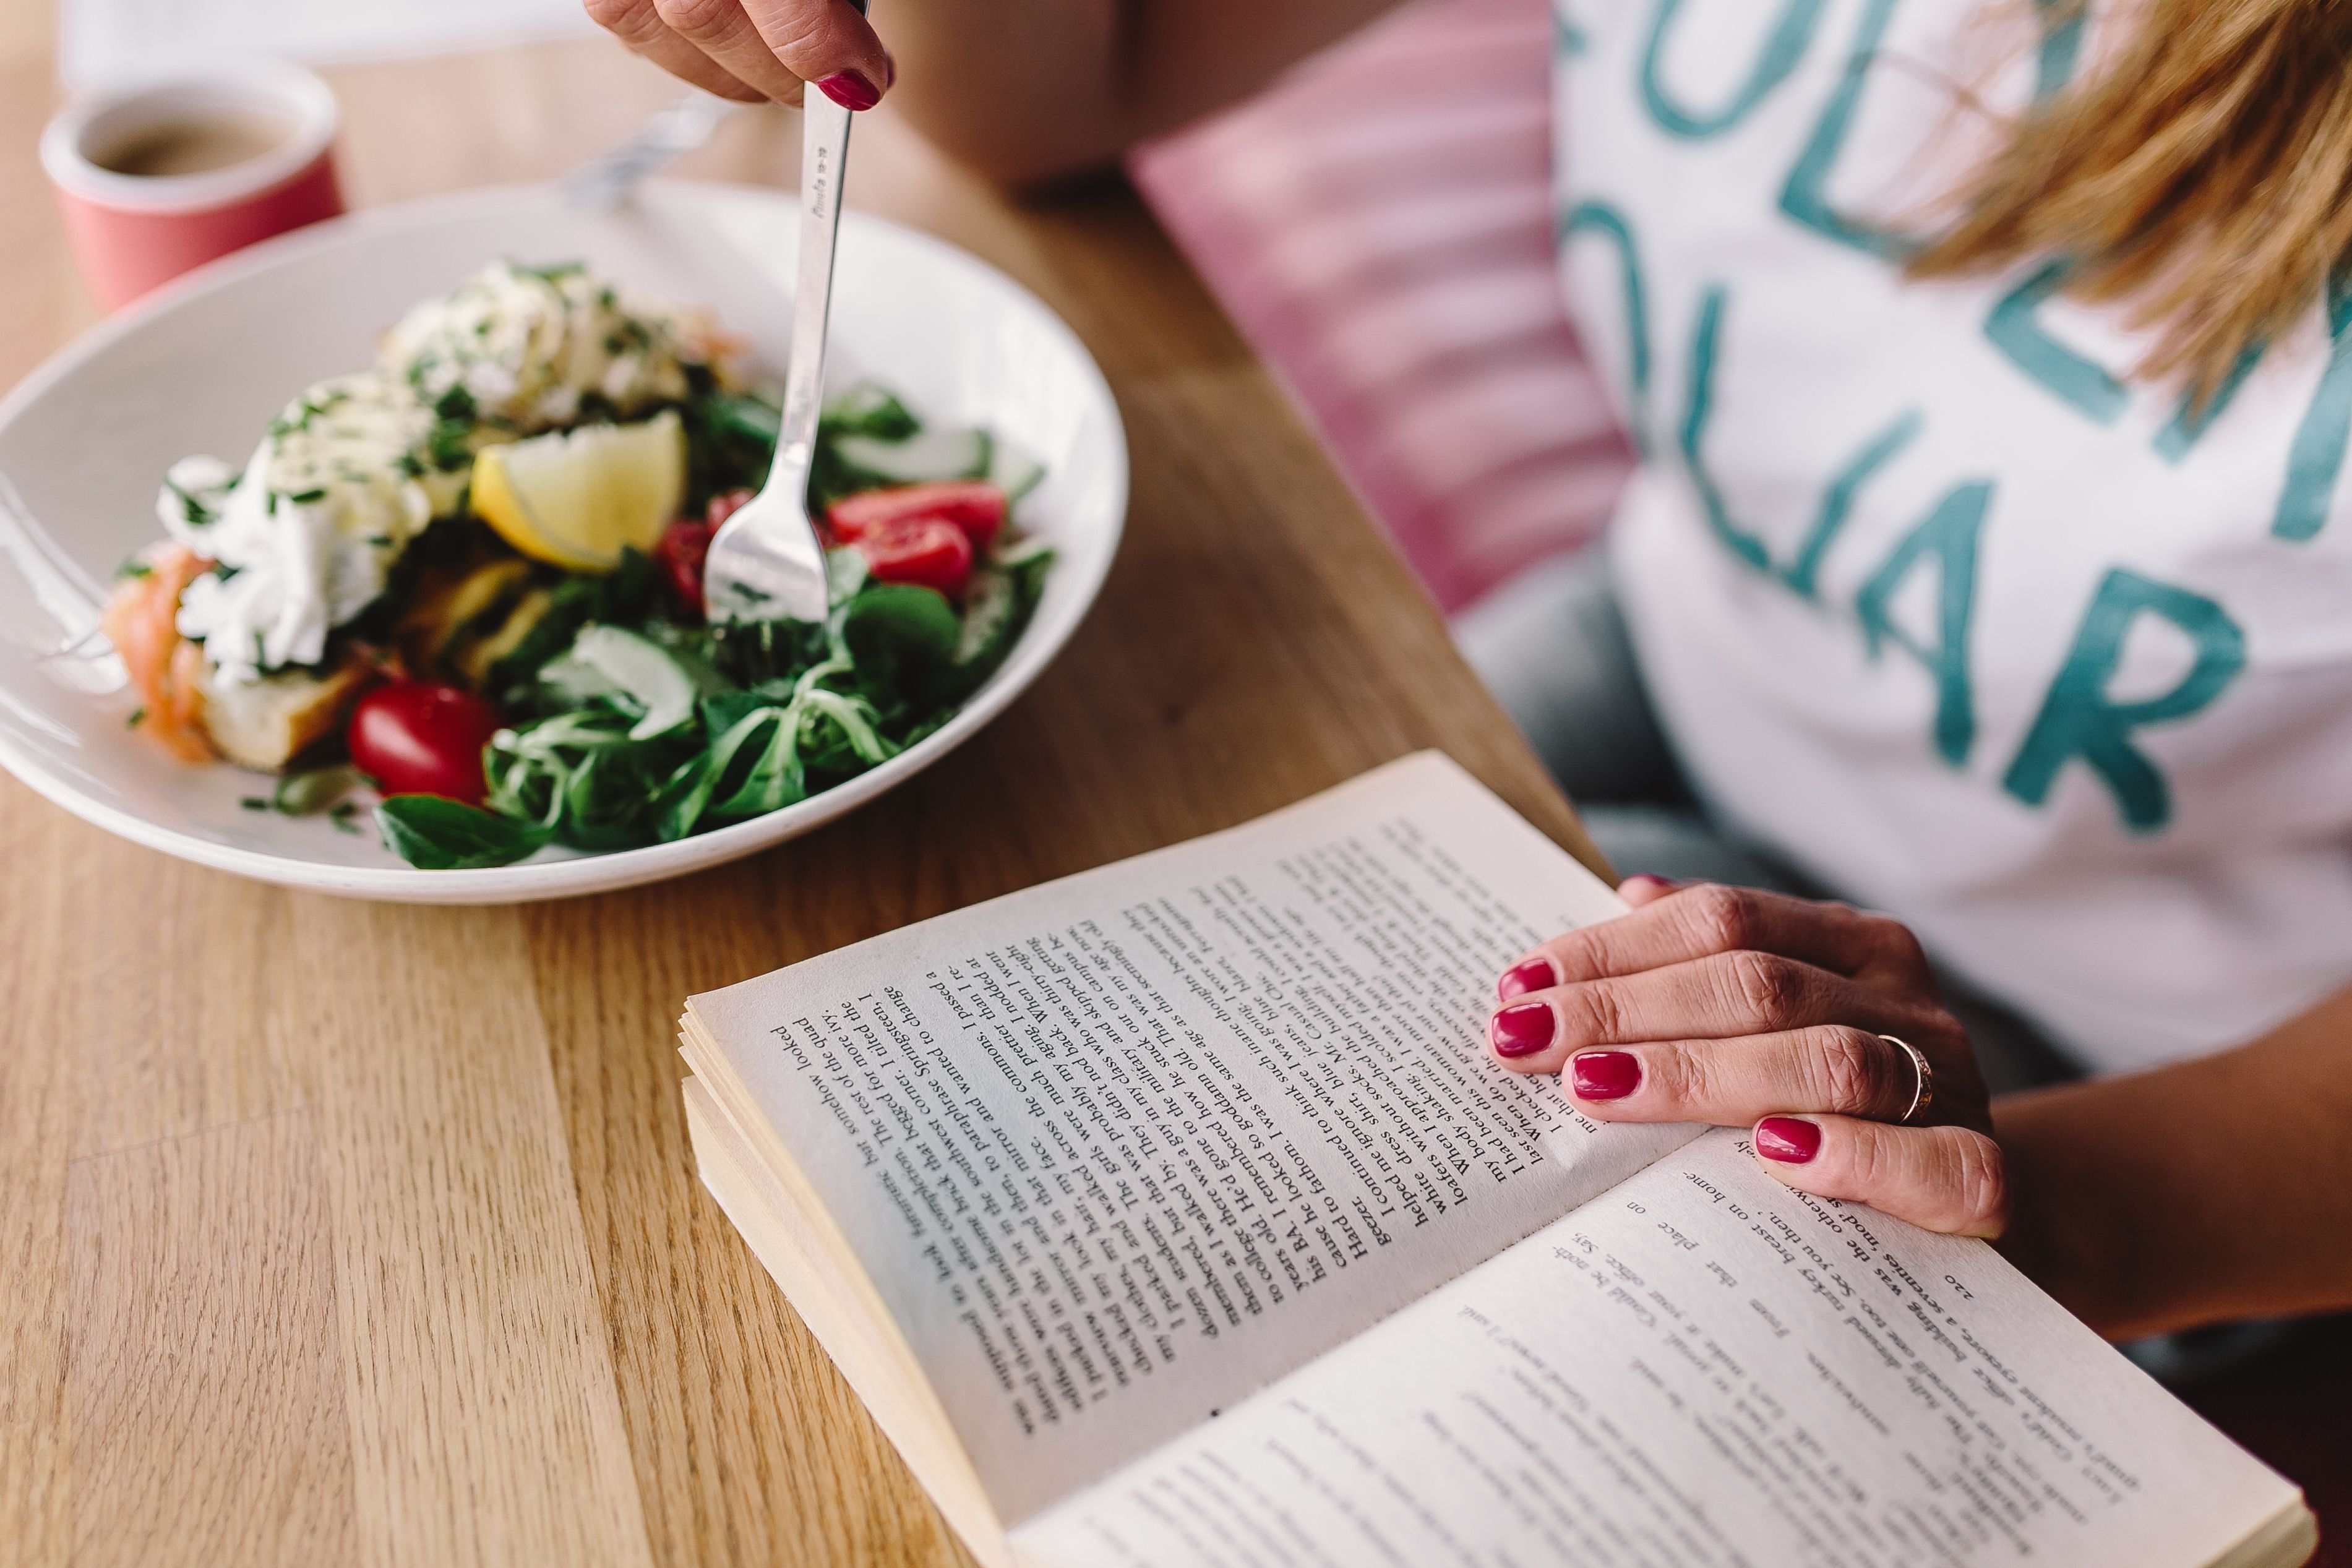 Reading while eating